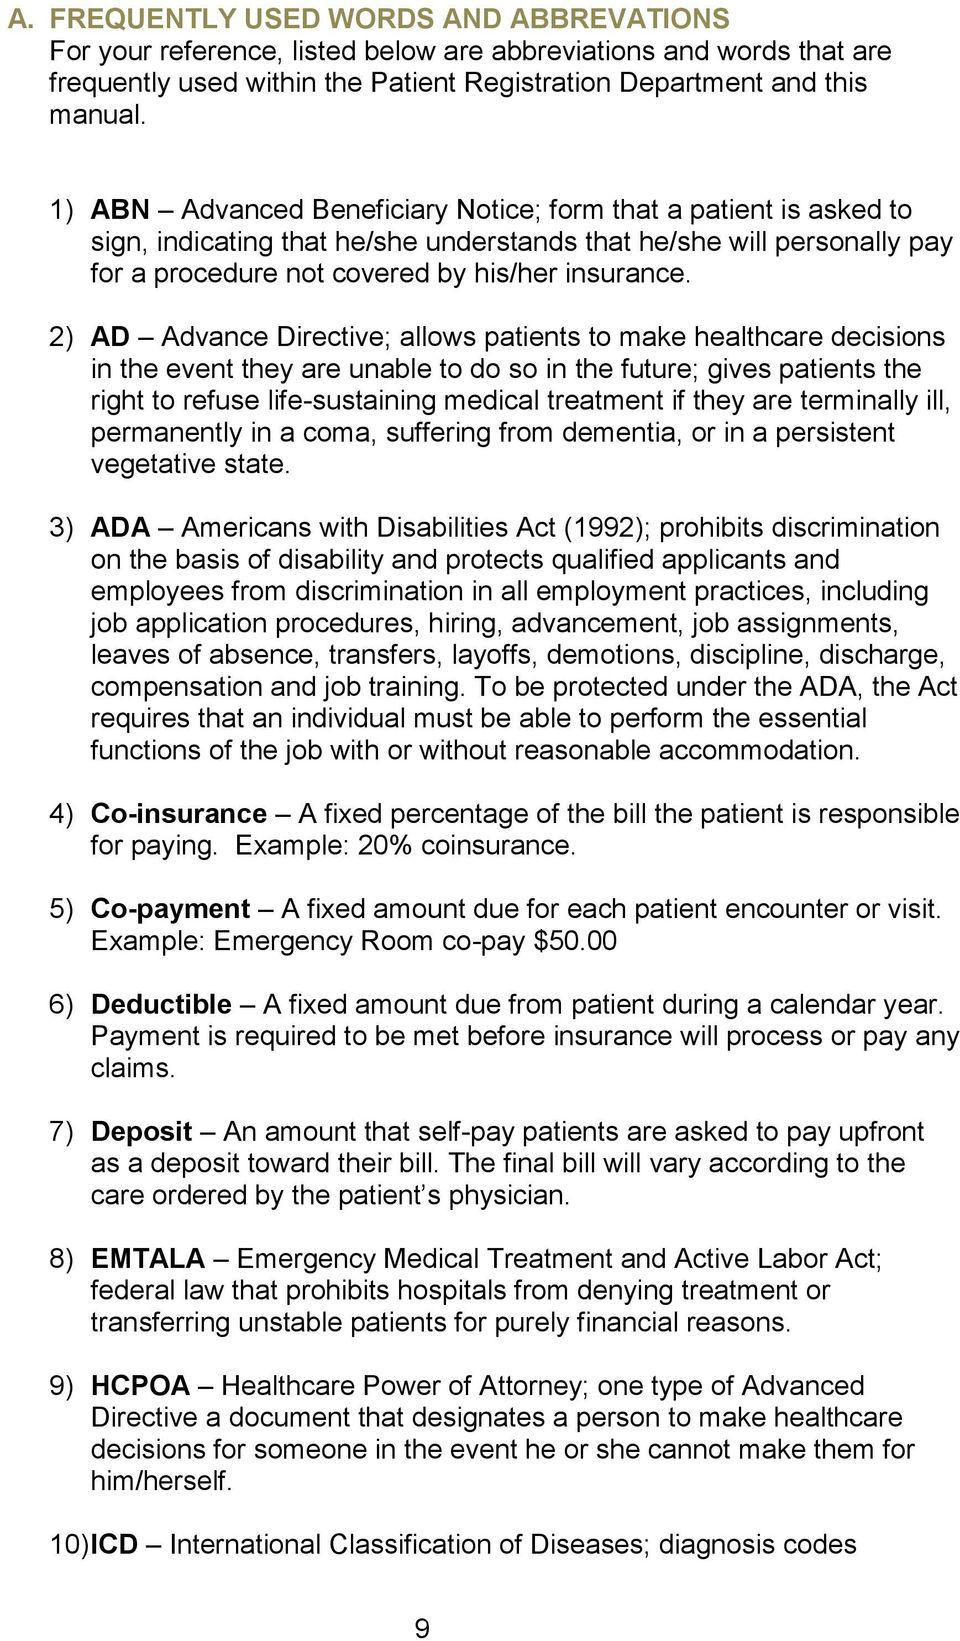 2) AD Advance Directive; allows patients to make healthcare decisions in the event they are unable to do so in the future; gives patients the right to refuse life-sustaining medical treatment if they